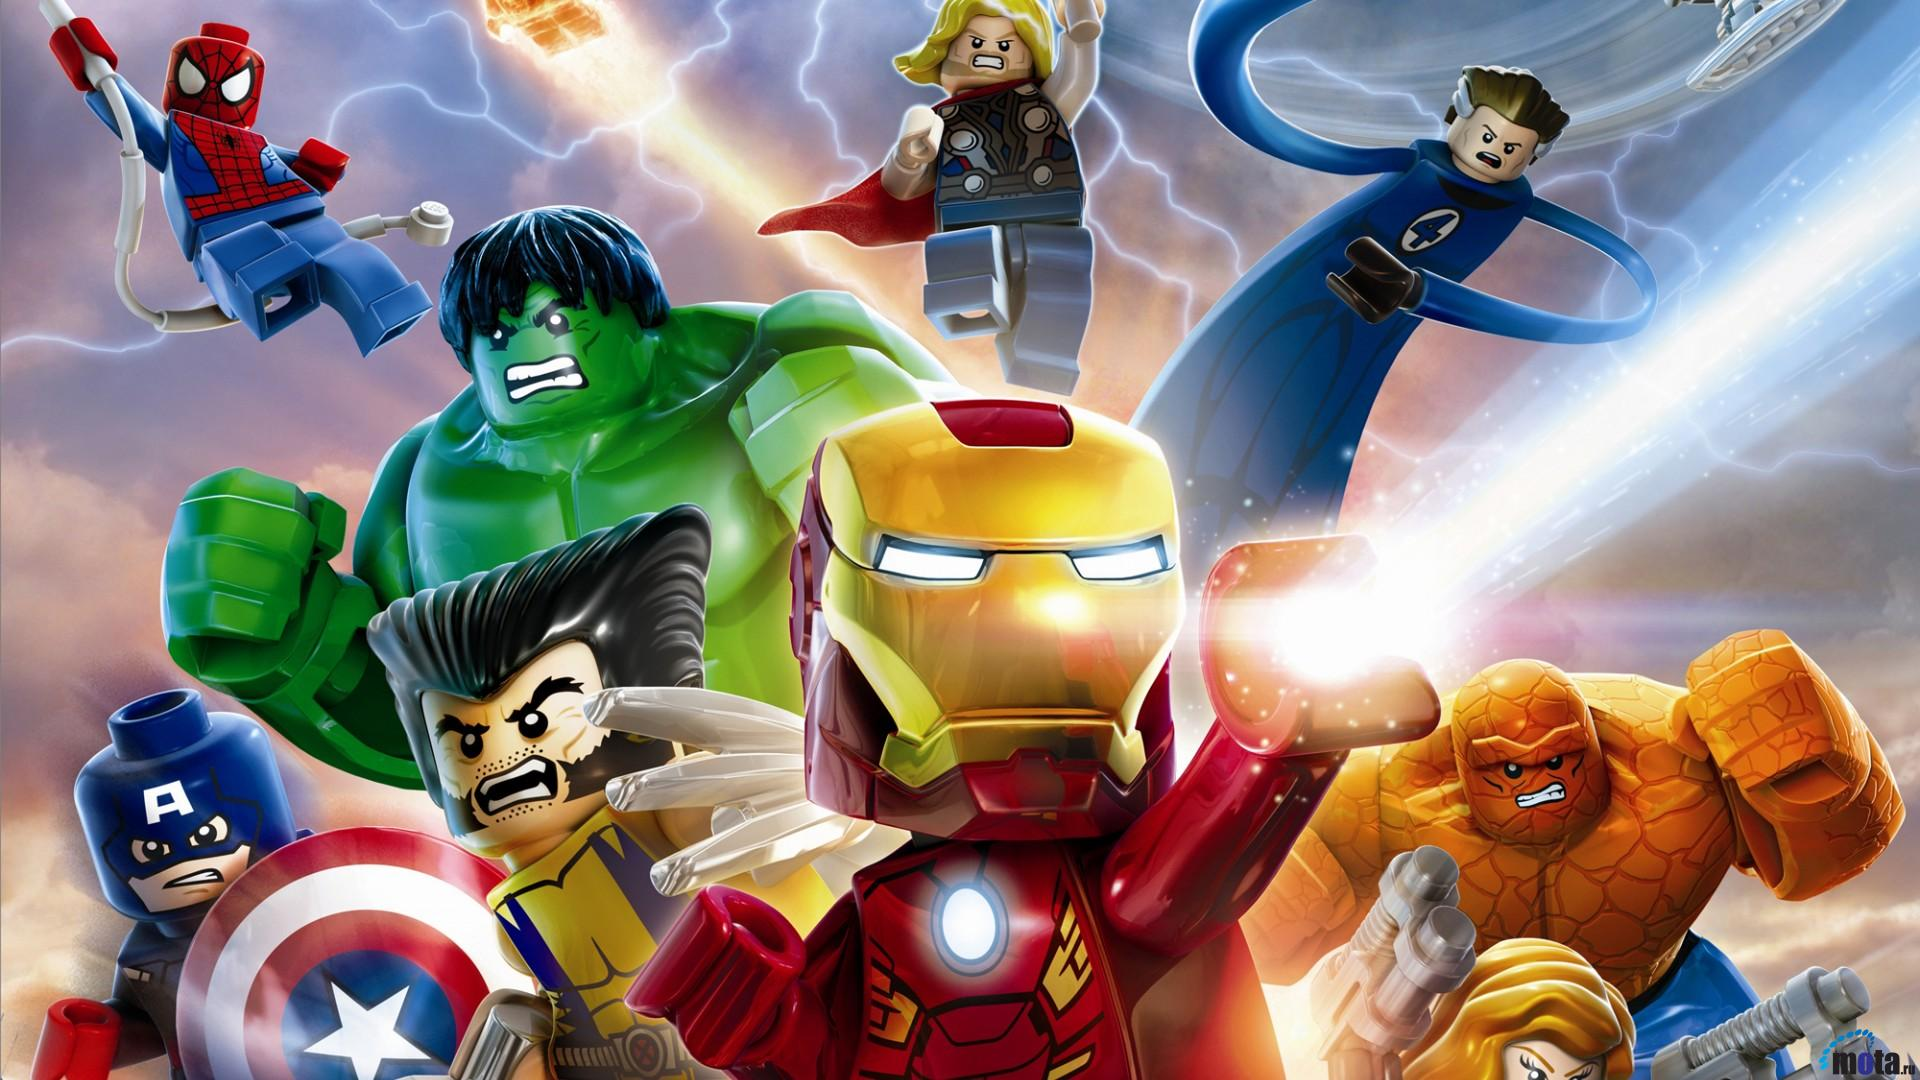 Wallpaper Heroes Game Lego Marvel Super Heroes 1920 x 1080 HDTV 1080p 1920x1080